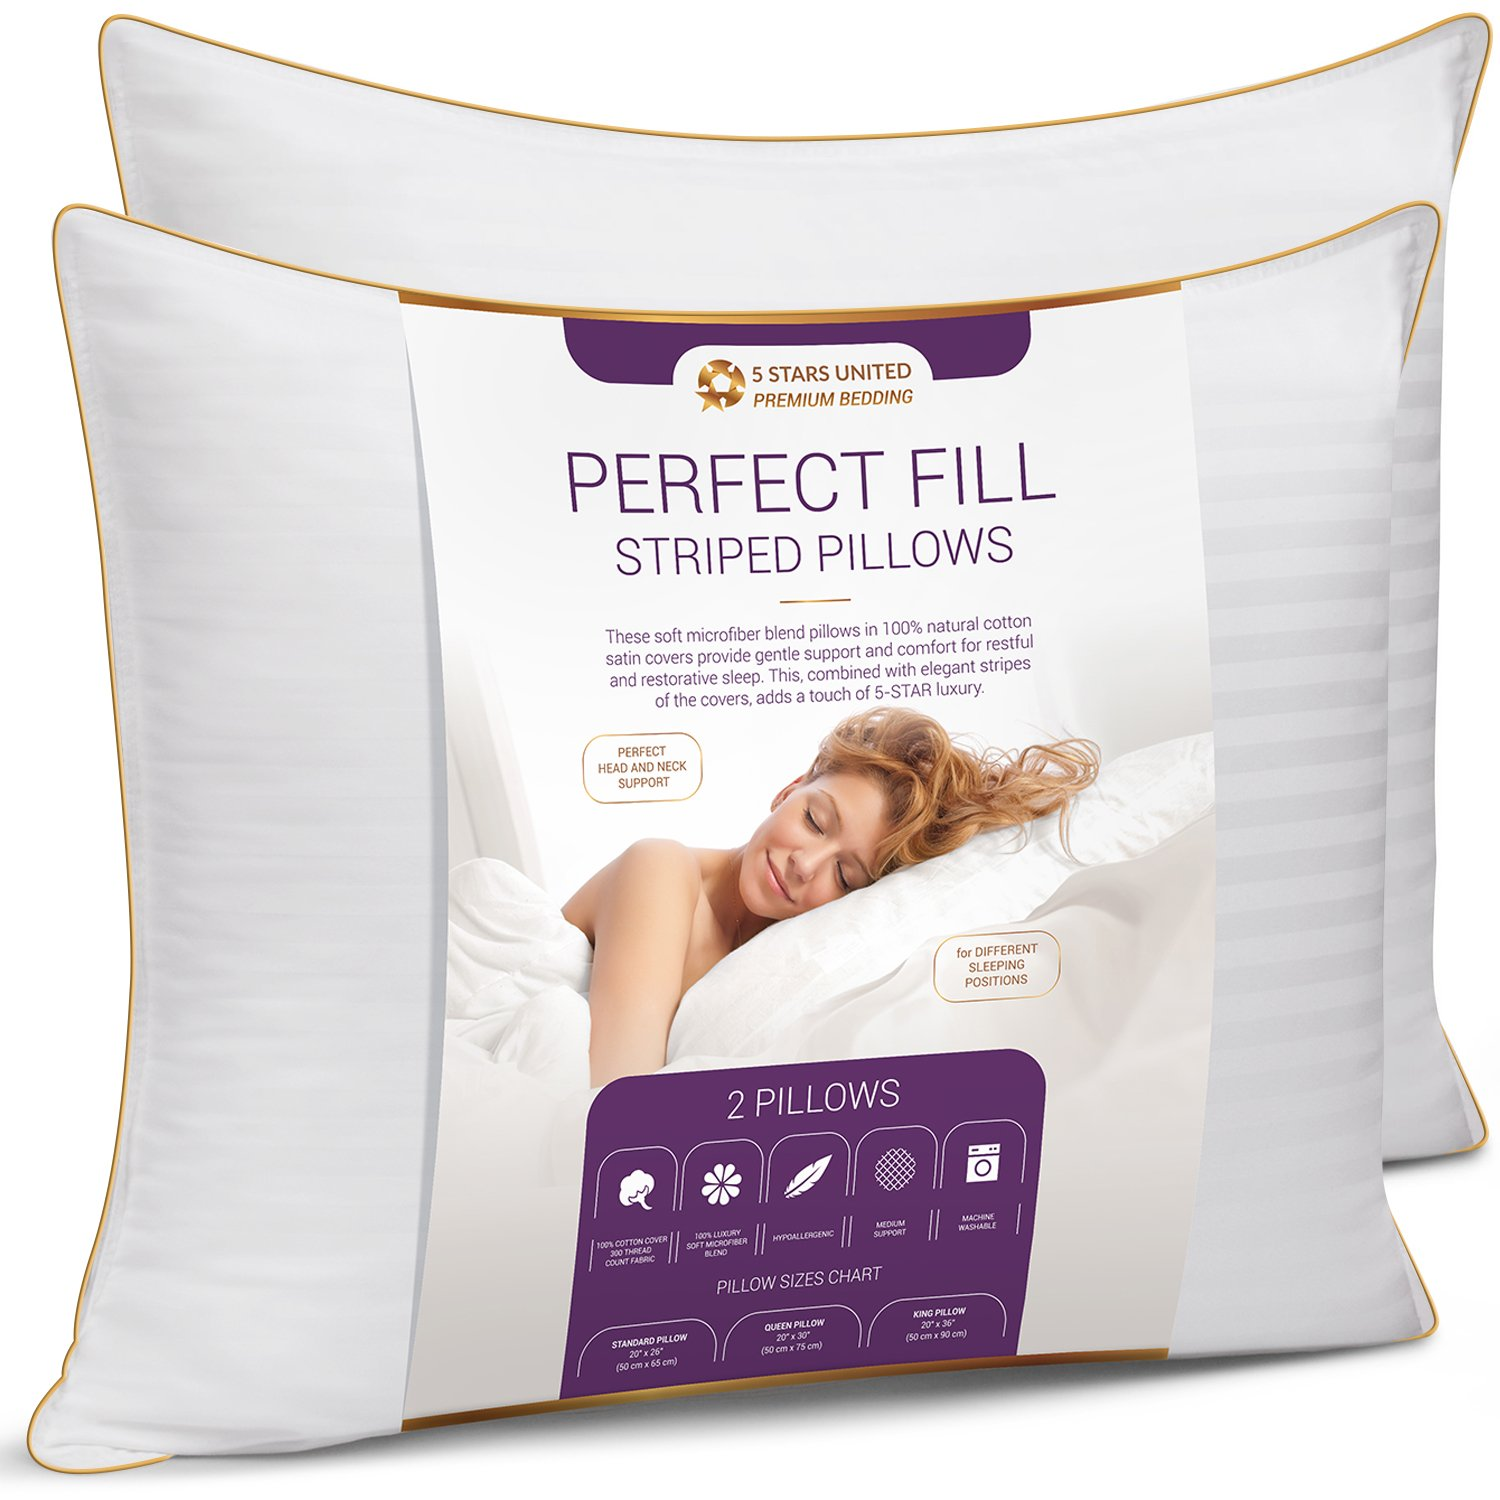 King Size Bed Pillows for Sleeping - 20x36, 2-Pack - Mid Loft - Soft Fiber Fill - Hypoallergenic - Stripe Cotton Covers - Top Alternative to Feather and Down Bedding – Fit California King and Twin Bed by 5 STARS UNITED